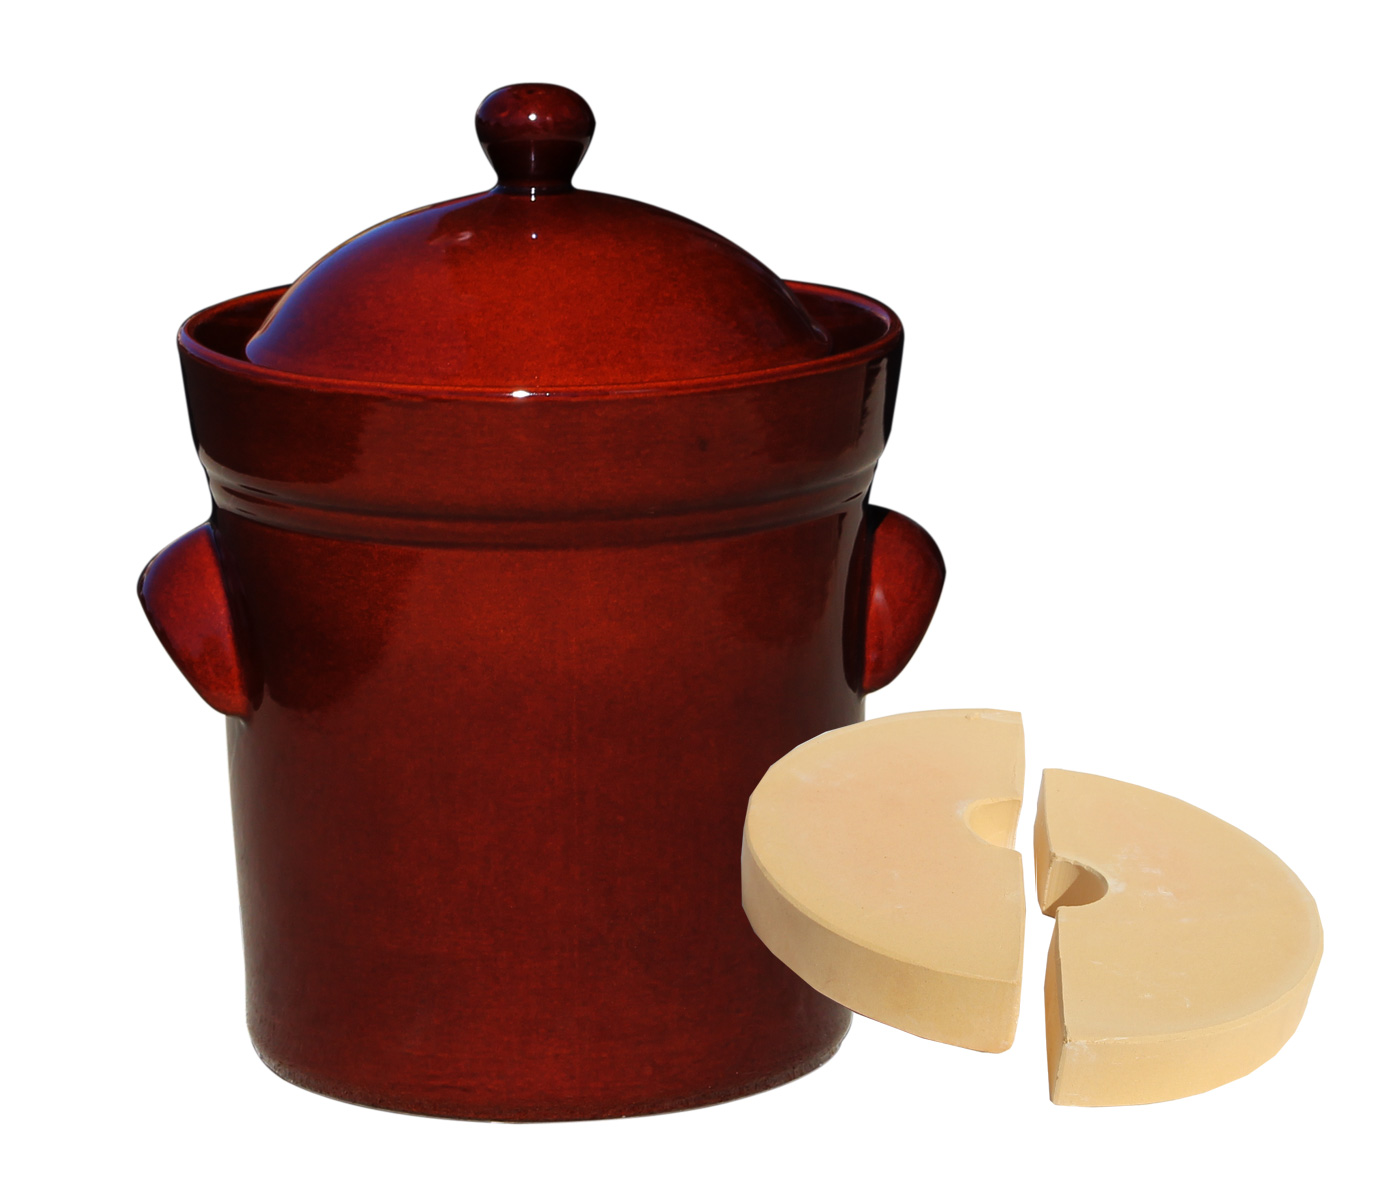 Fermenting Crock Pot 10 liter / 42 Cups - PRESSING STONES INCLUDED